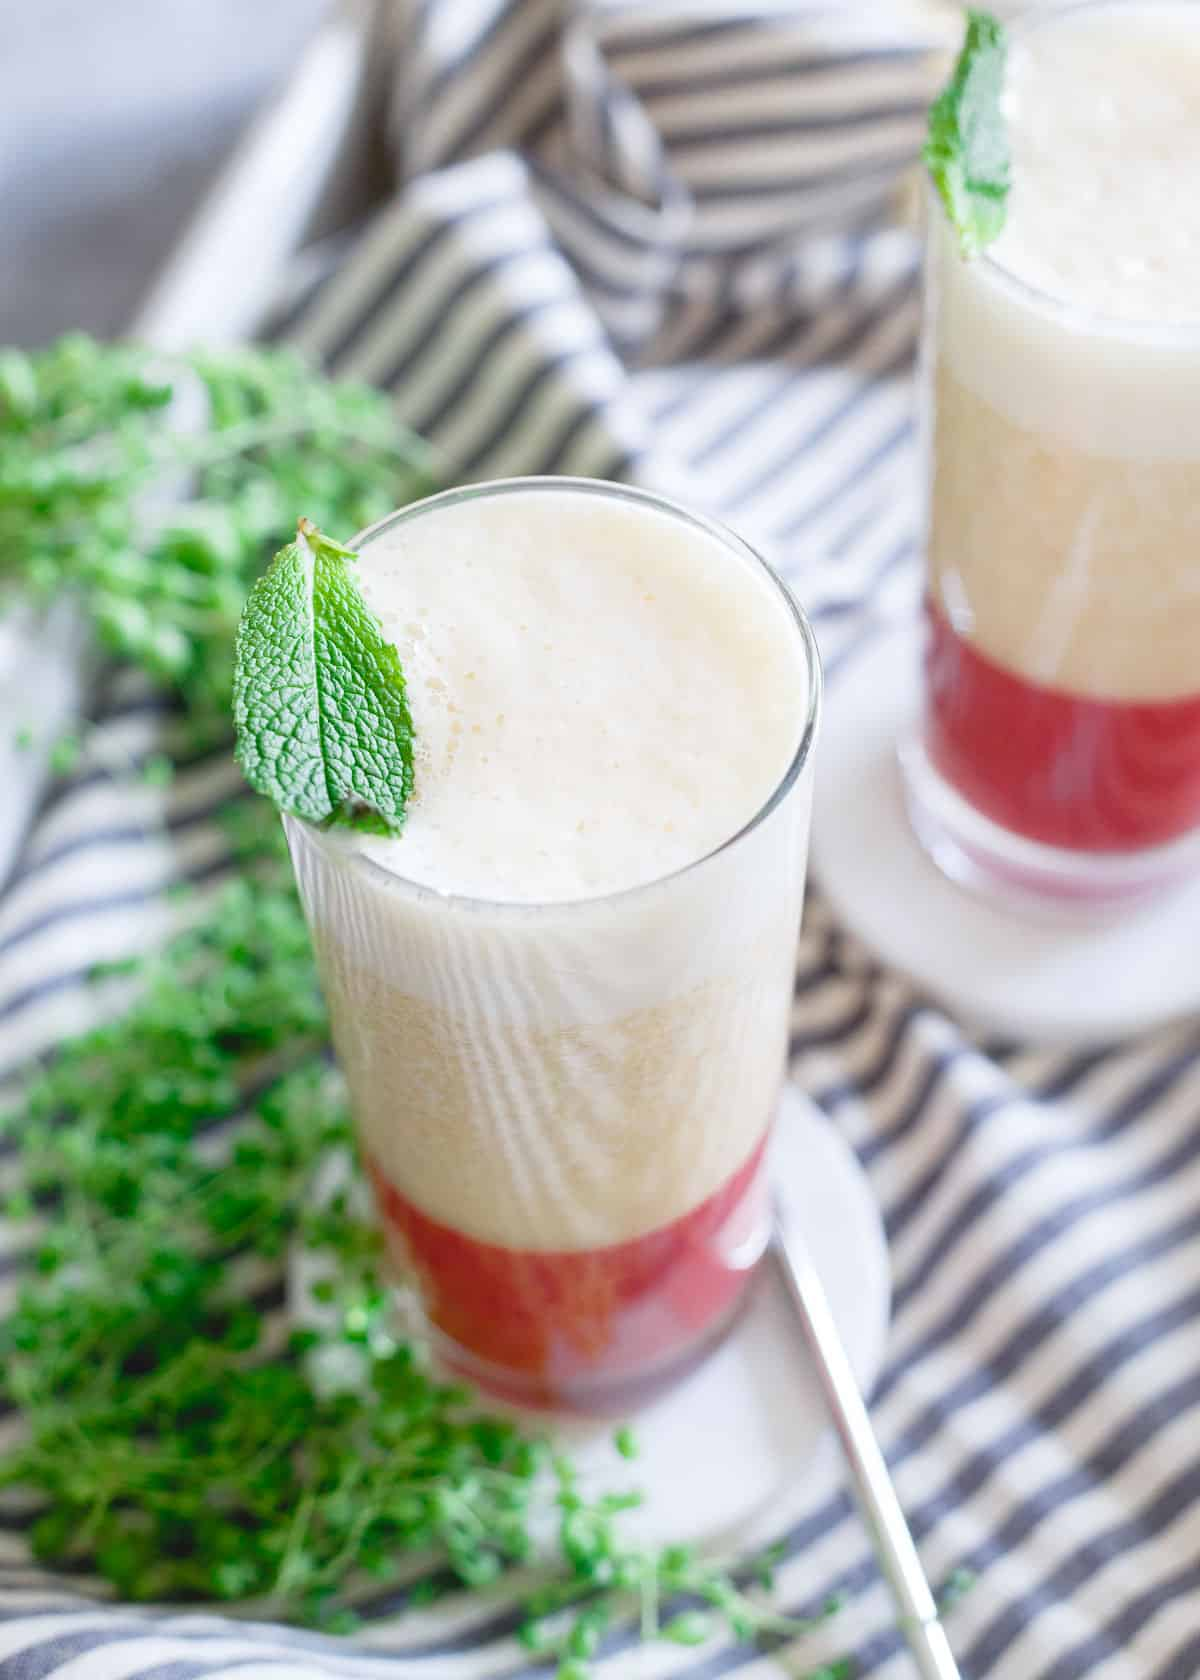 Strawberry ginger puree is a refreshing bottom layer to this peach banana smoothie.